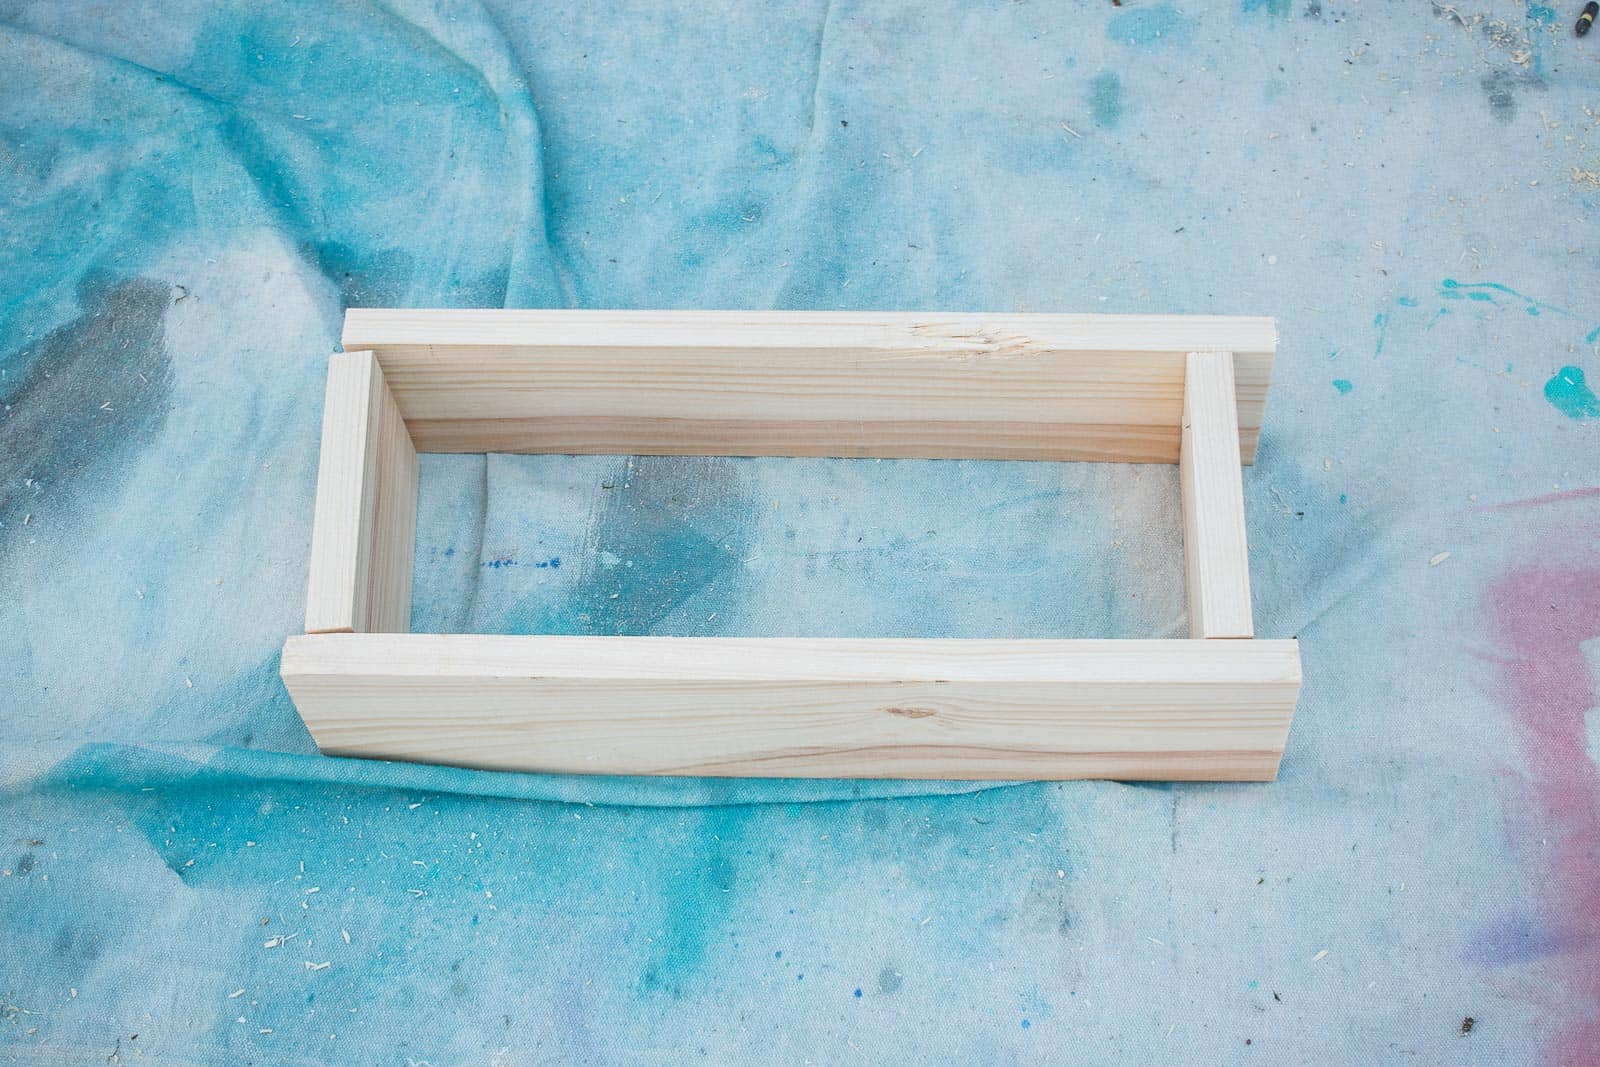 build the frame for the bench